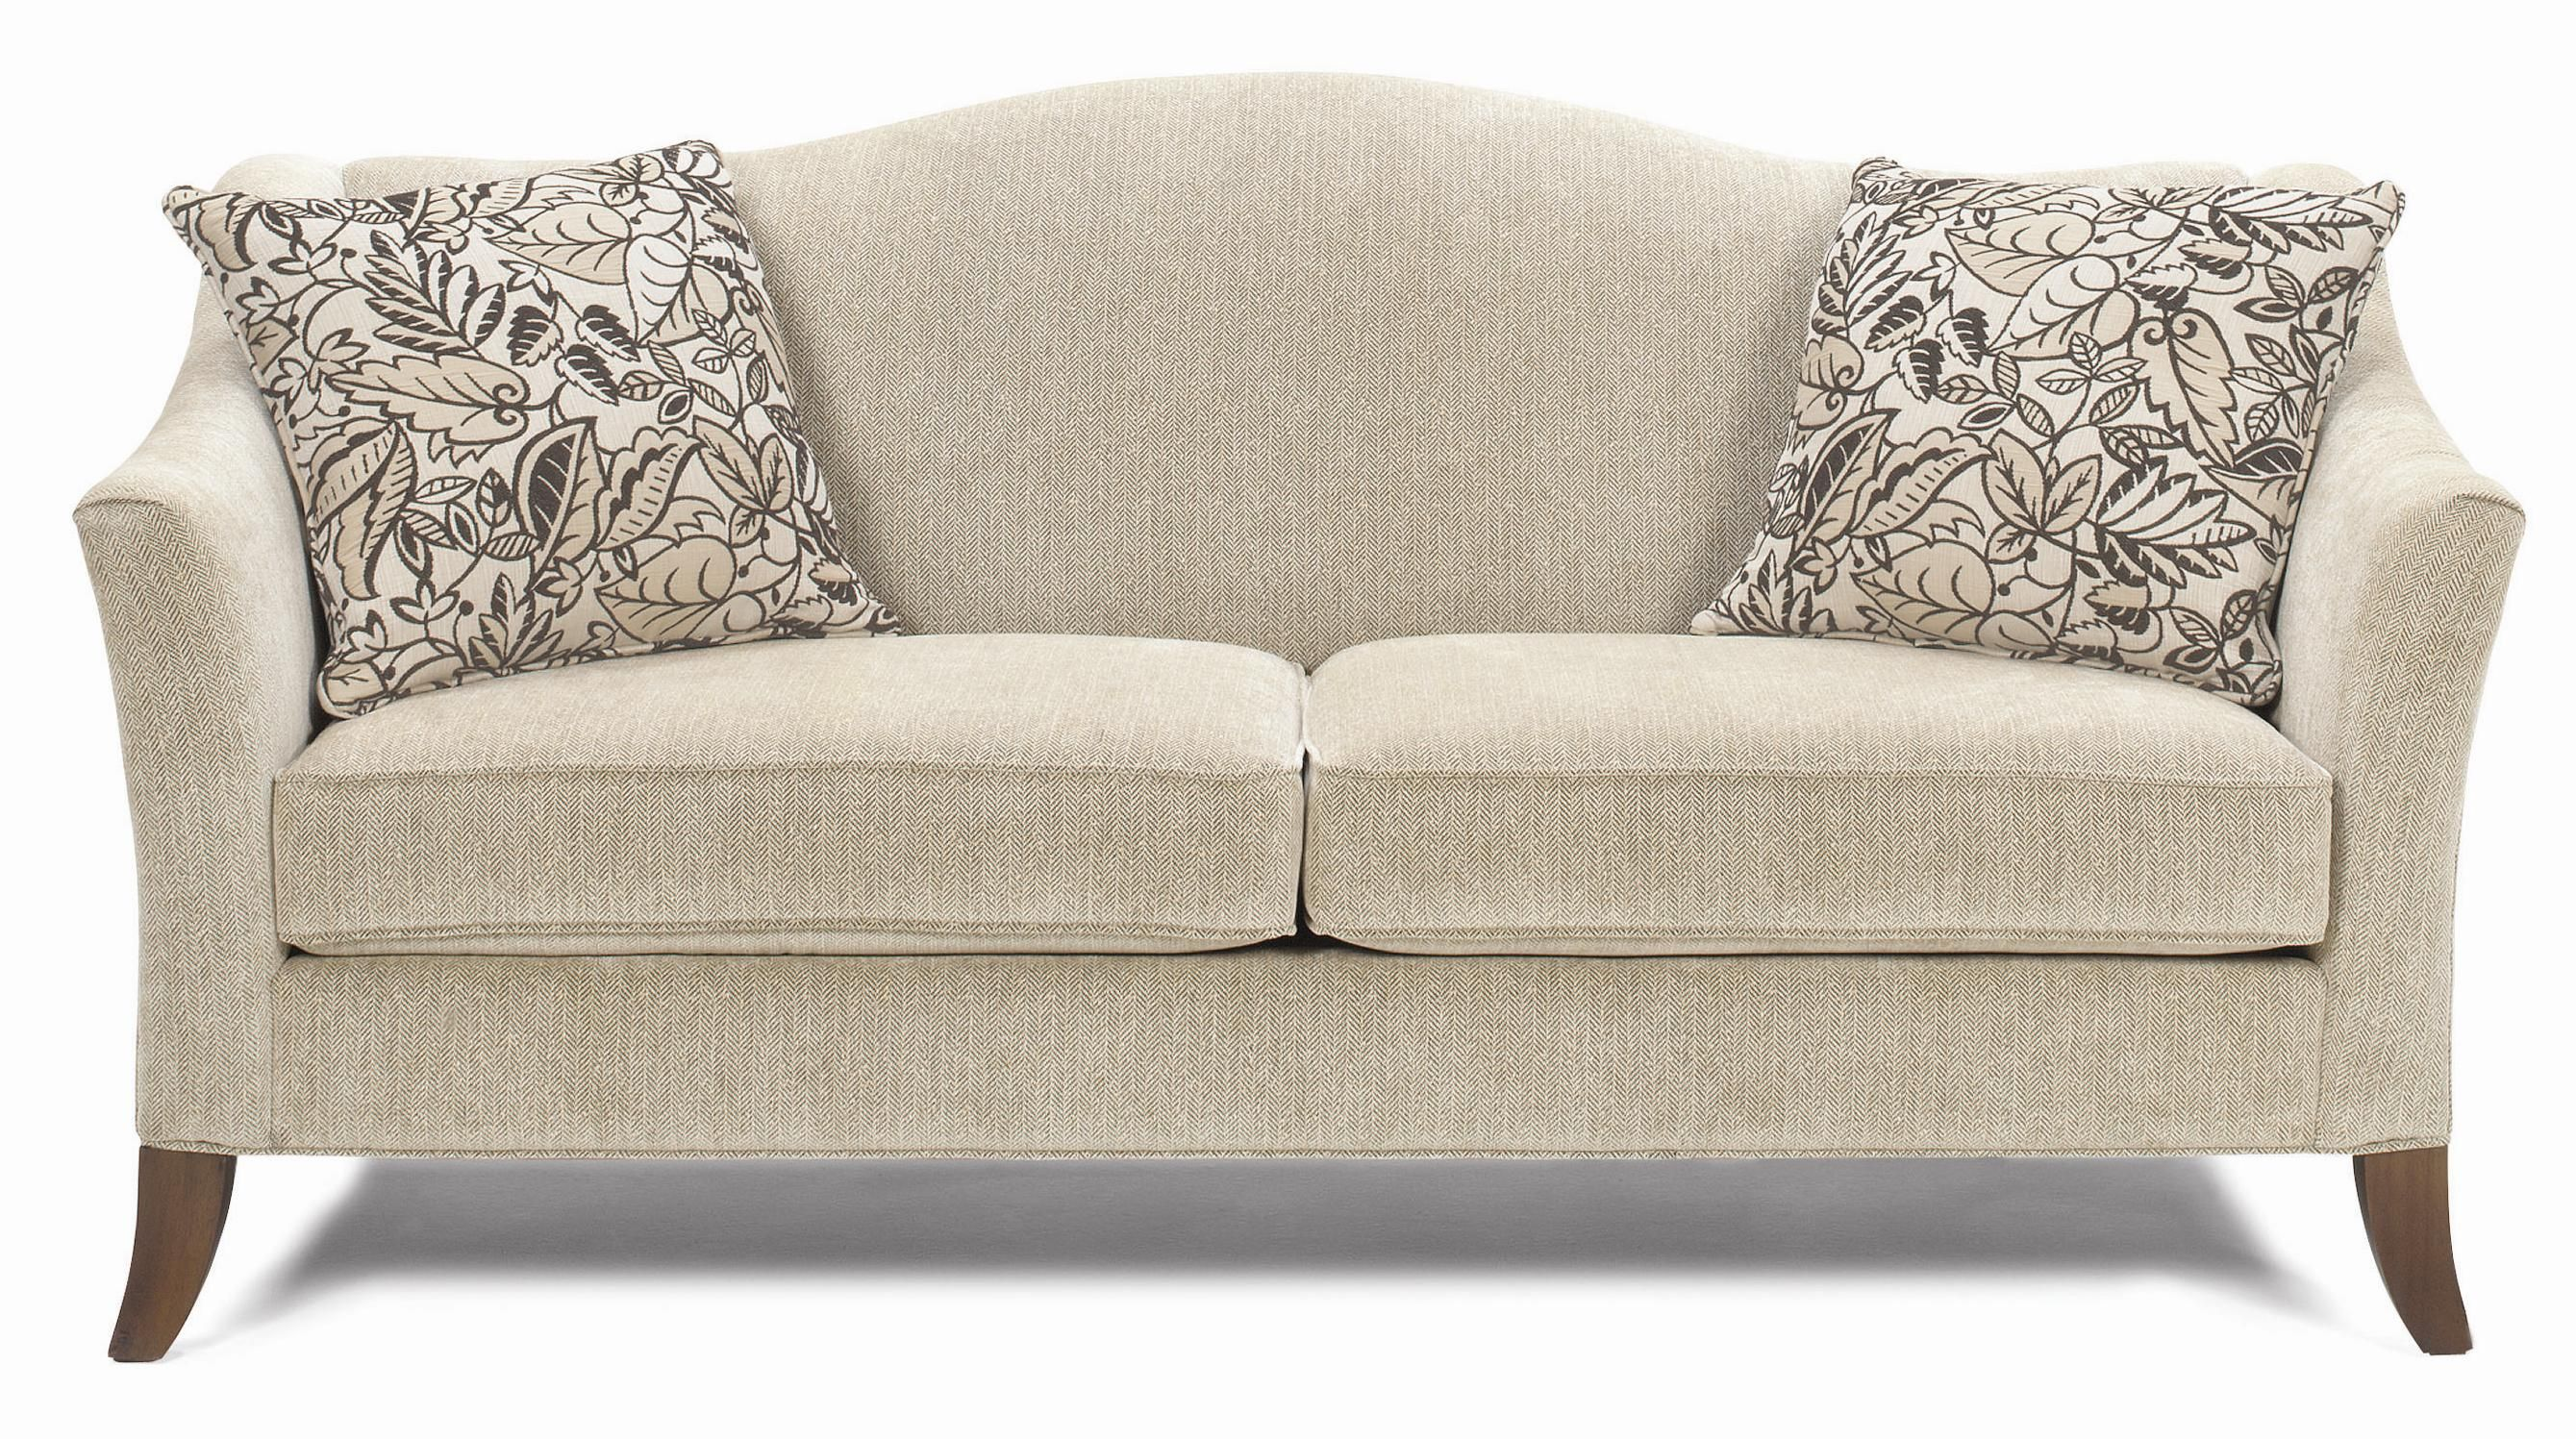 Living Room Couch. Ordered it in brown with burgundy flecks. Striped ...